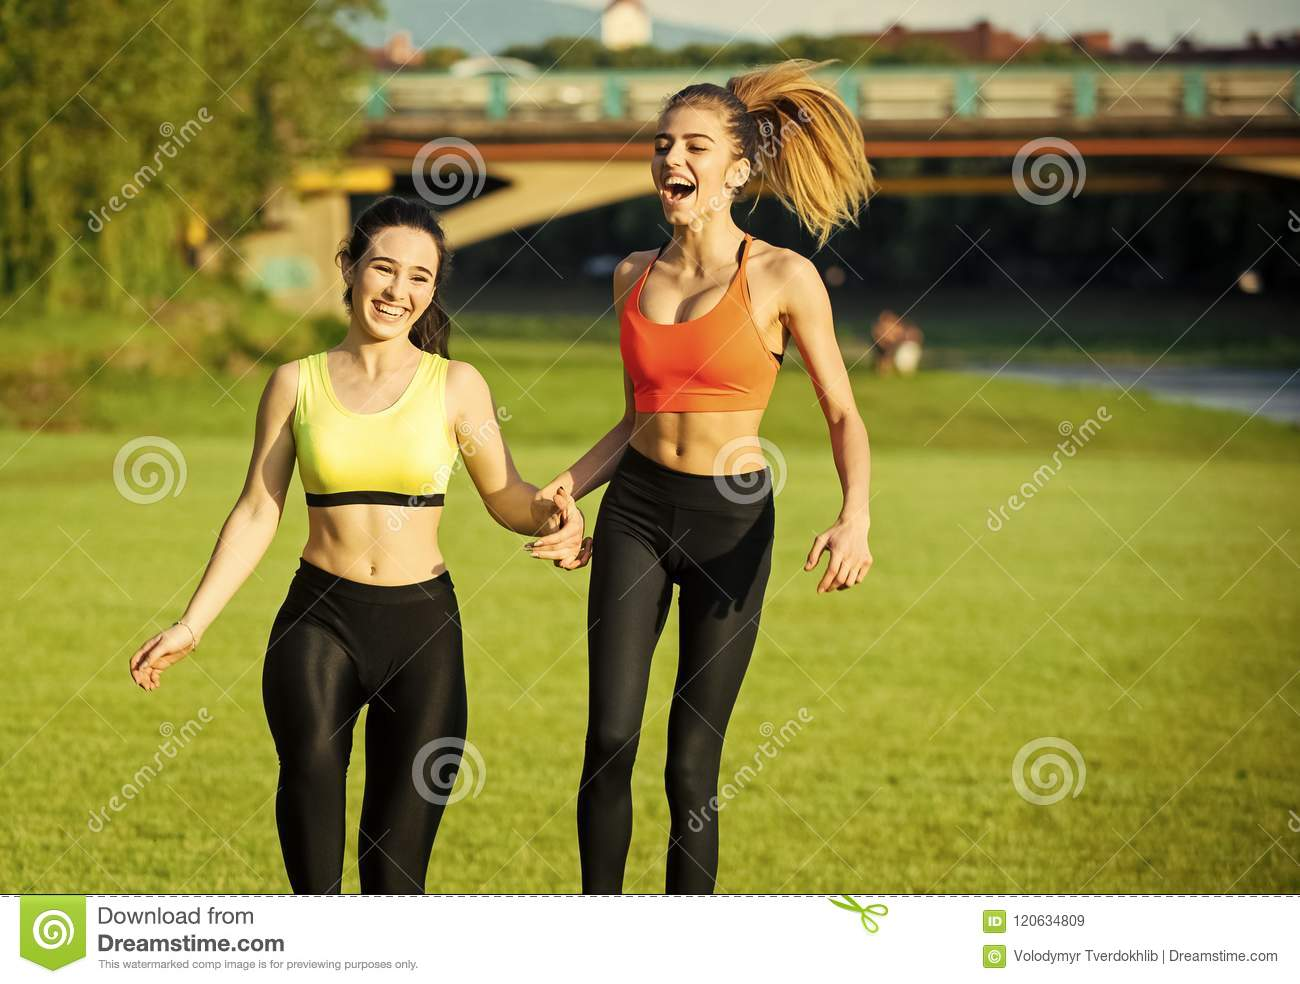 Sports Girls. Running Women Jogging In Country Stock Image - Image of  caucasian, female: 120634809